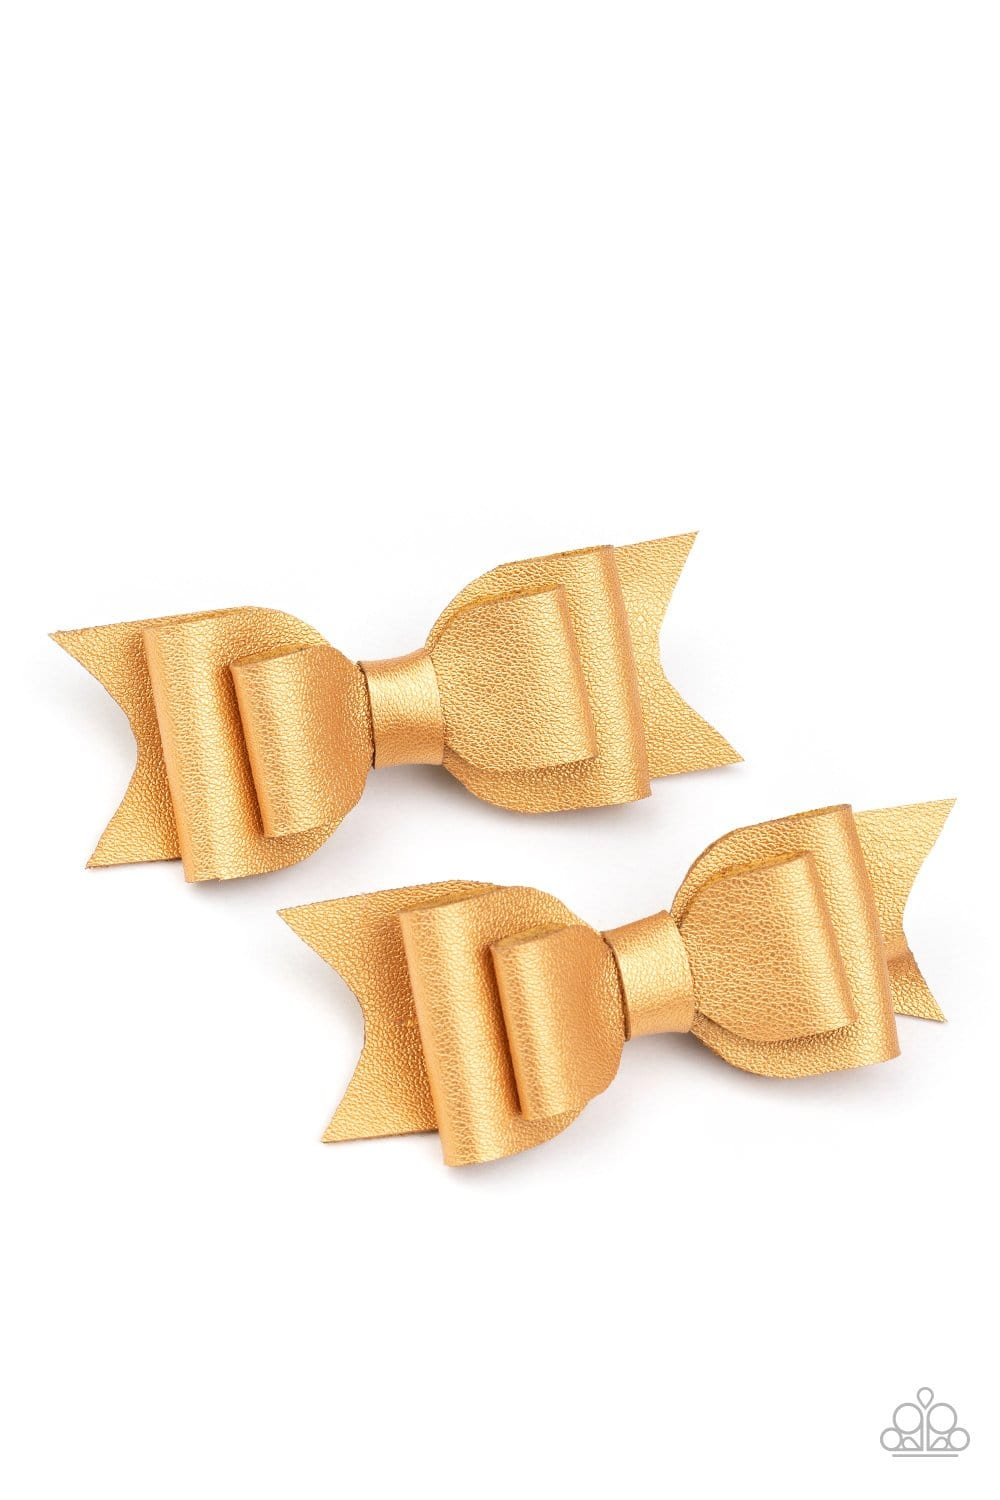 Paparazzi: Totally BOWS My Mind! - Gold Hair Clips - Jewels N' Thingz Boutique